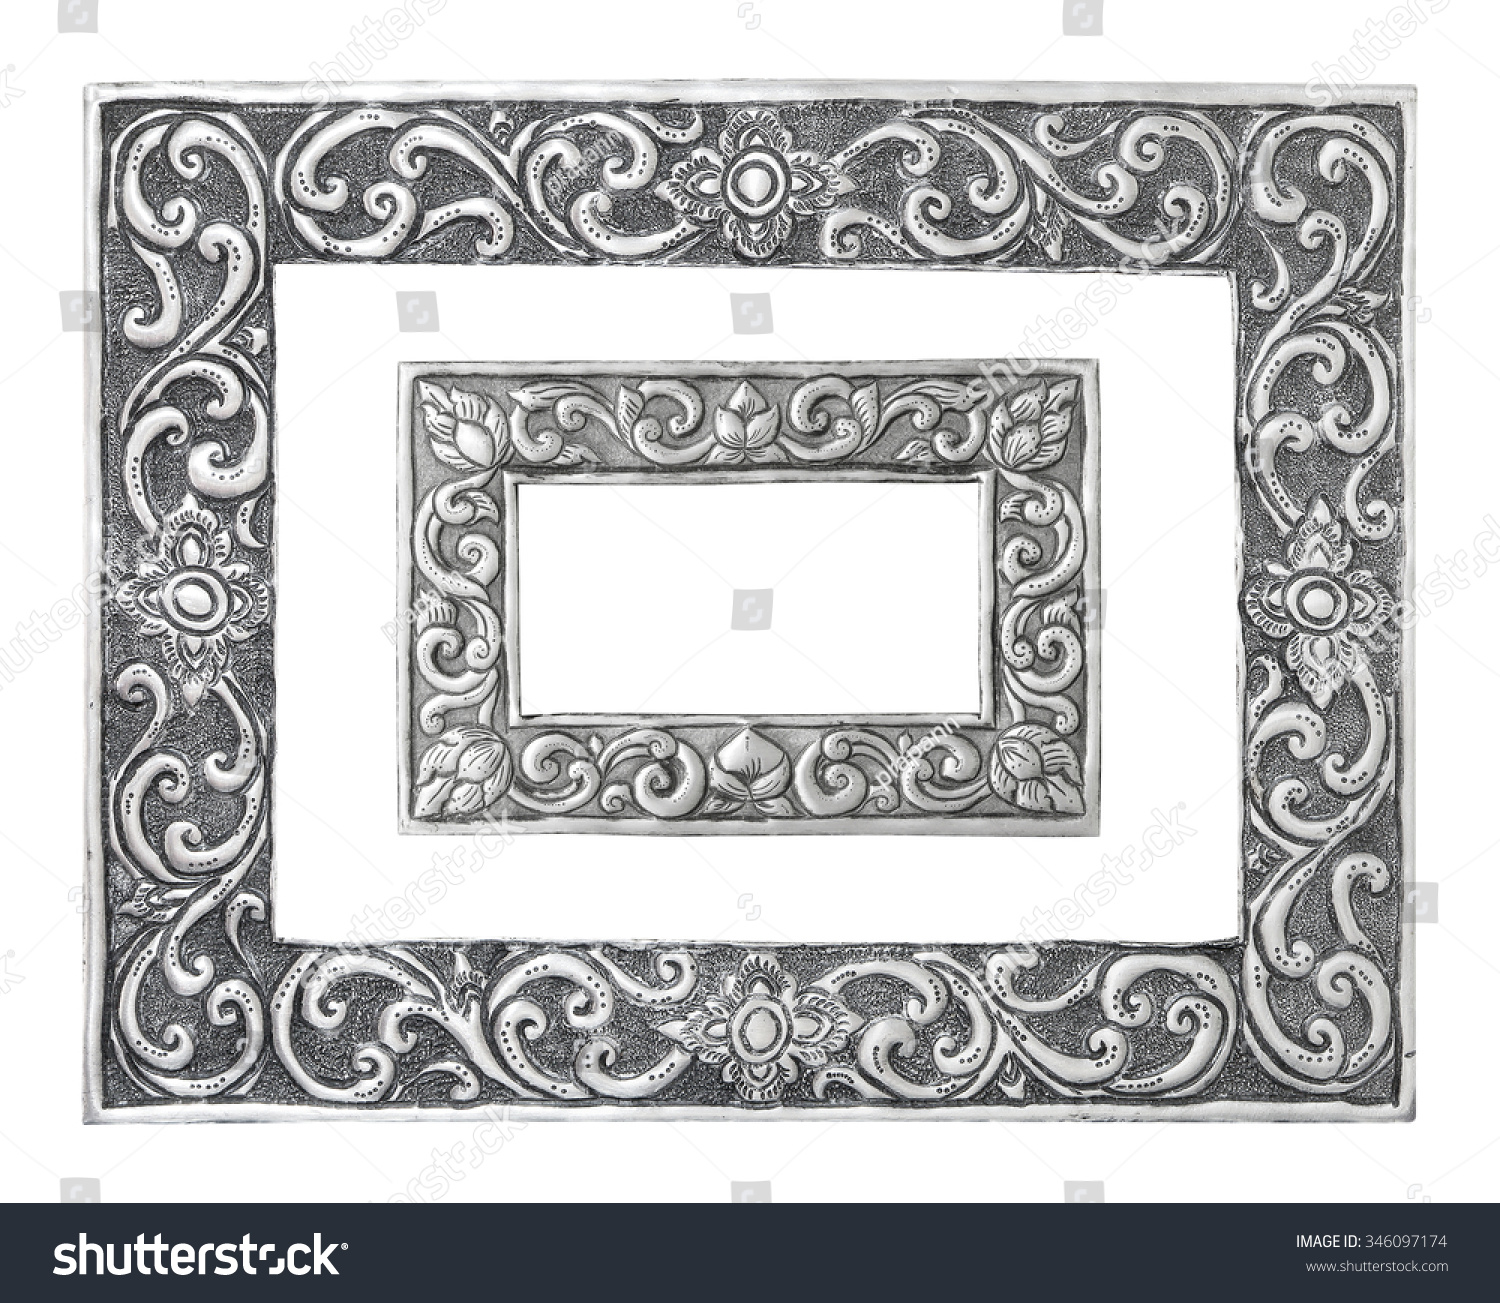 Old Decorative Silver Frame Handmade Engraved Stock Photo (Edit Now ...